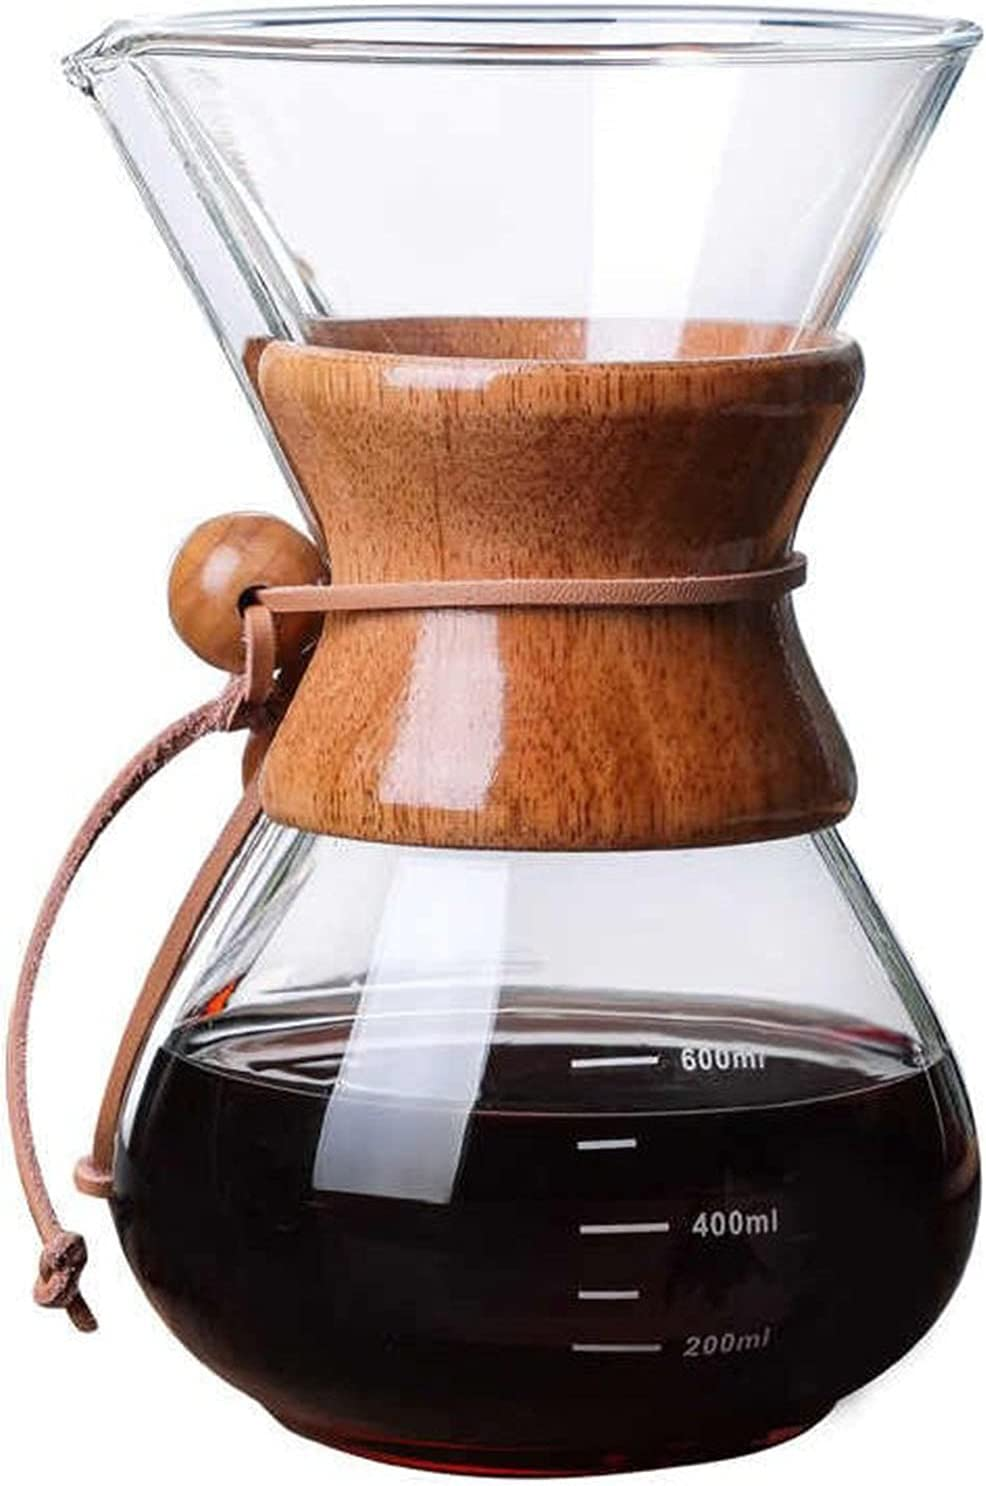 Coffee Pots - 600ml Resistant Coff New life Maker Long-awaited Pour-over Glass